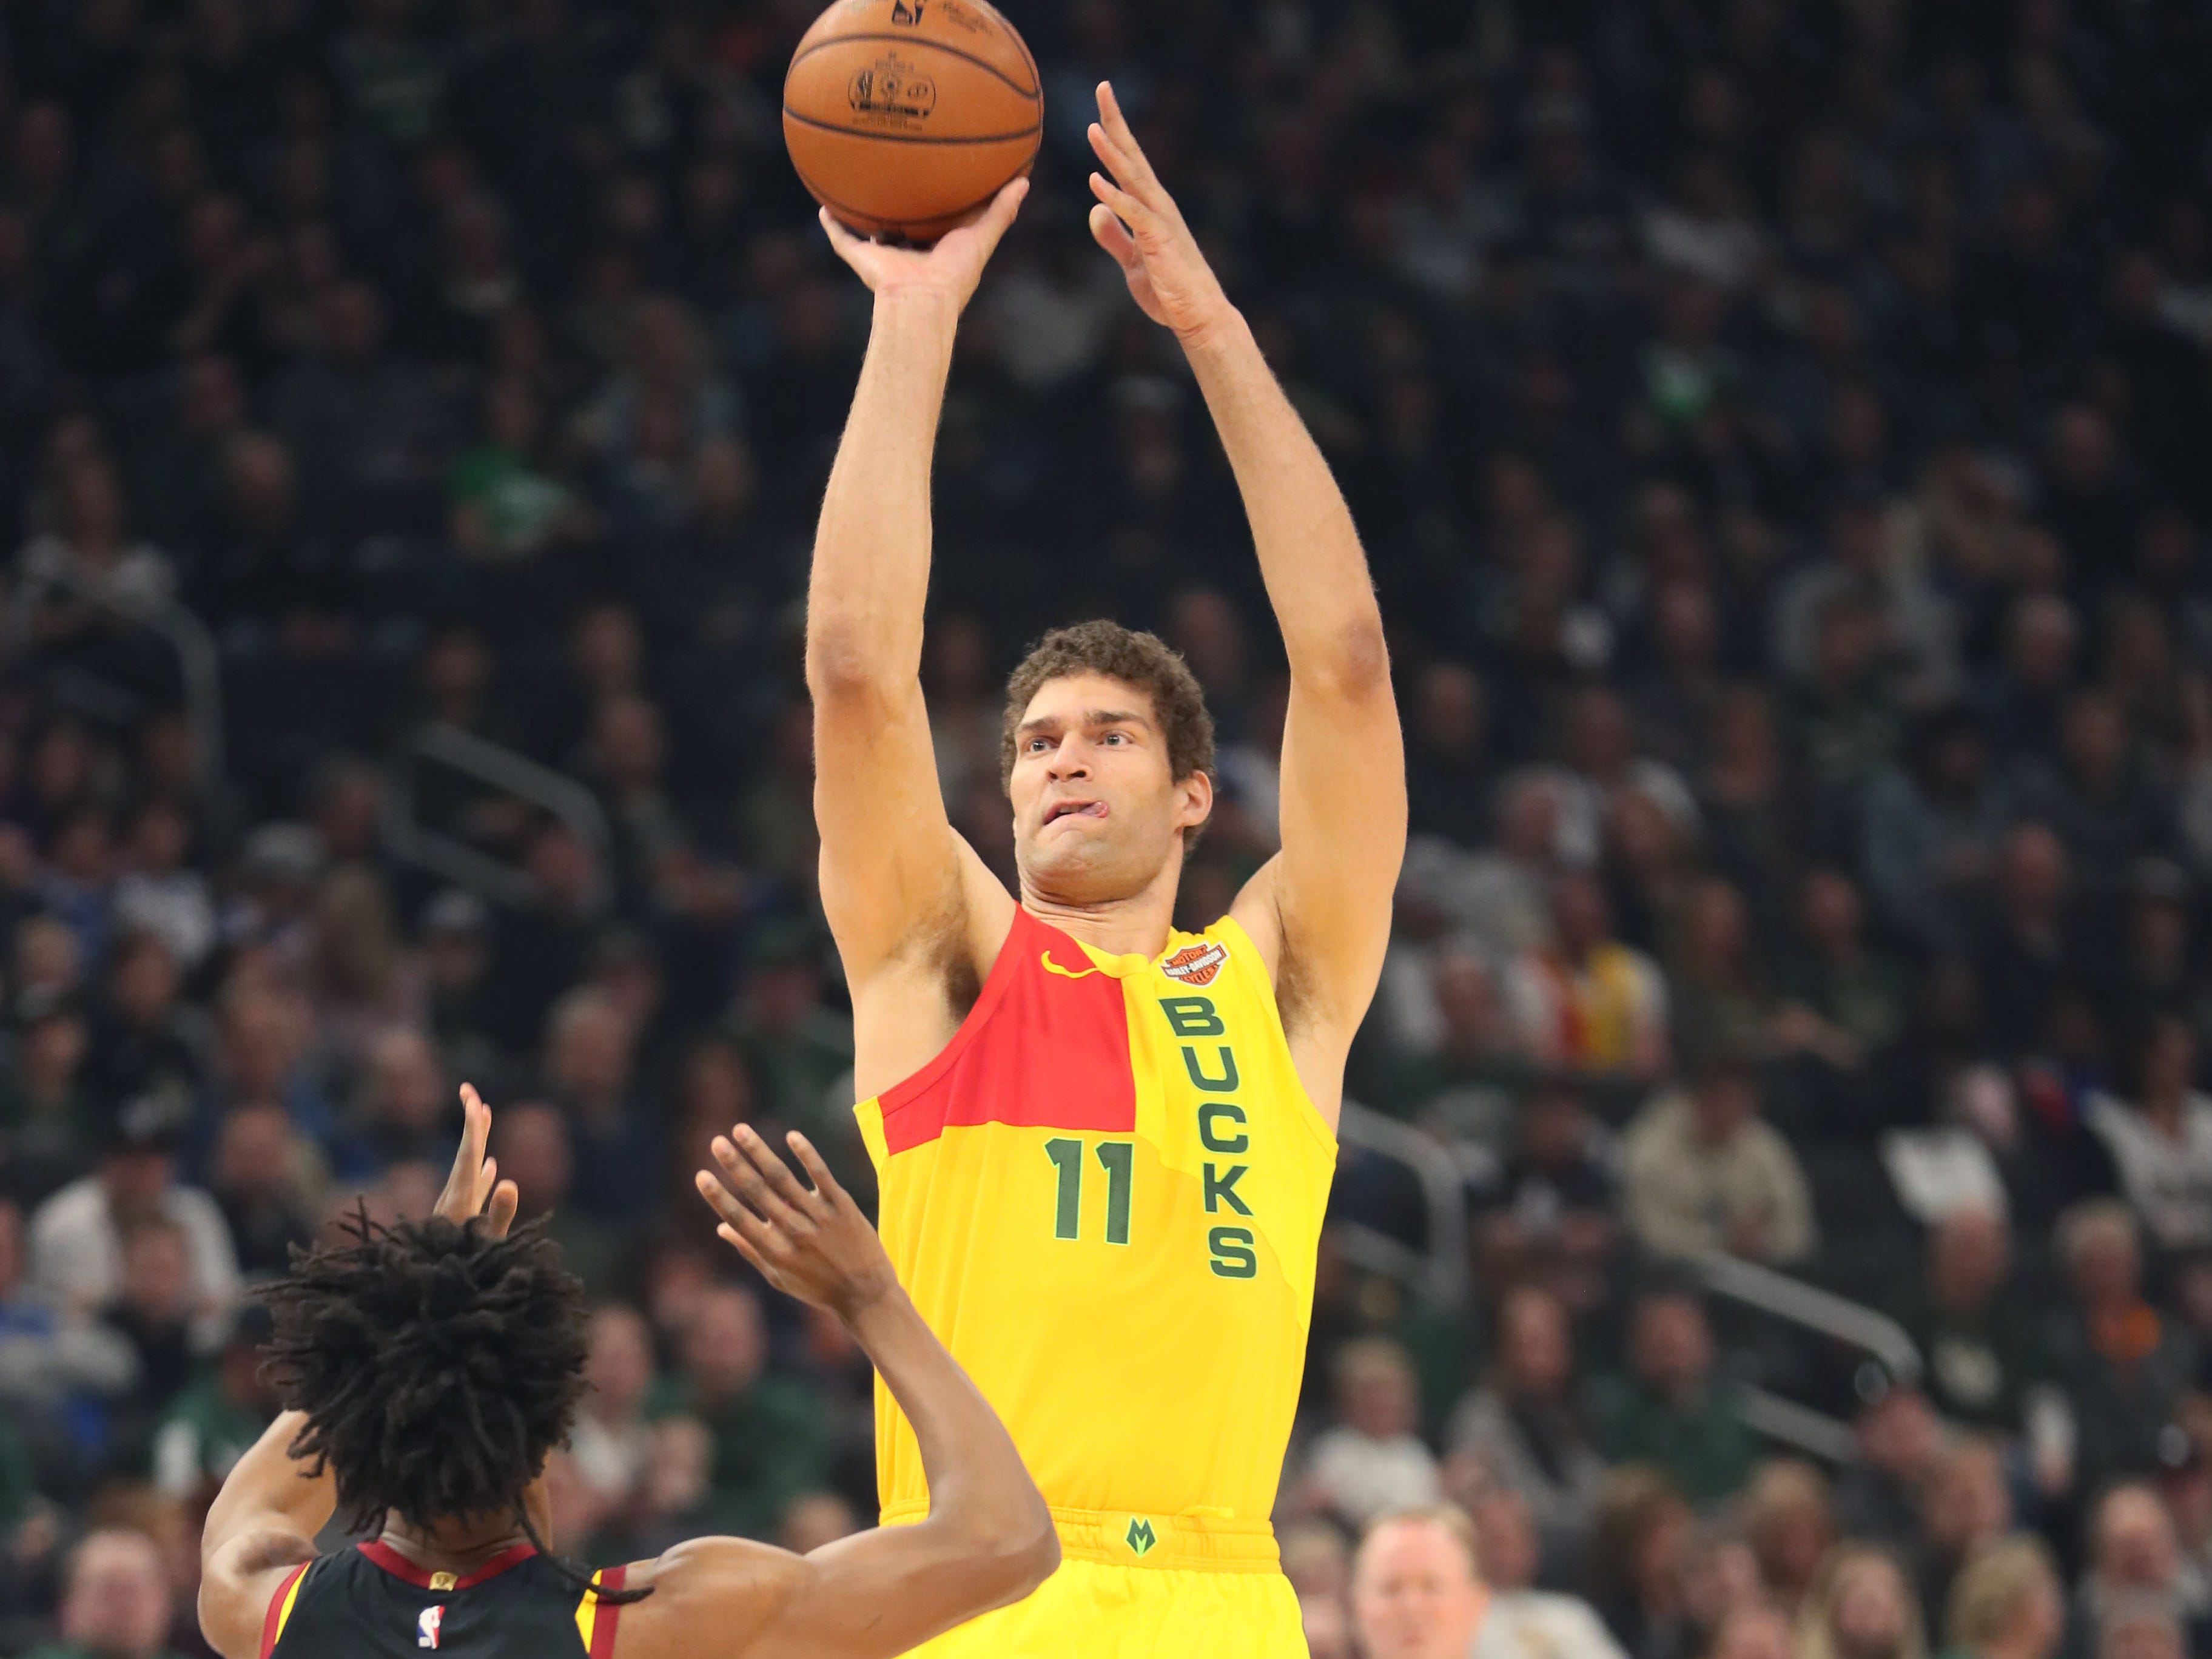 Bucks center Brook Lopez launches a three-pointer in front of the Cavaliers' Collin Sexton on Sunday afternoon.